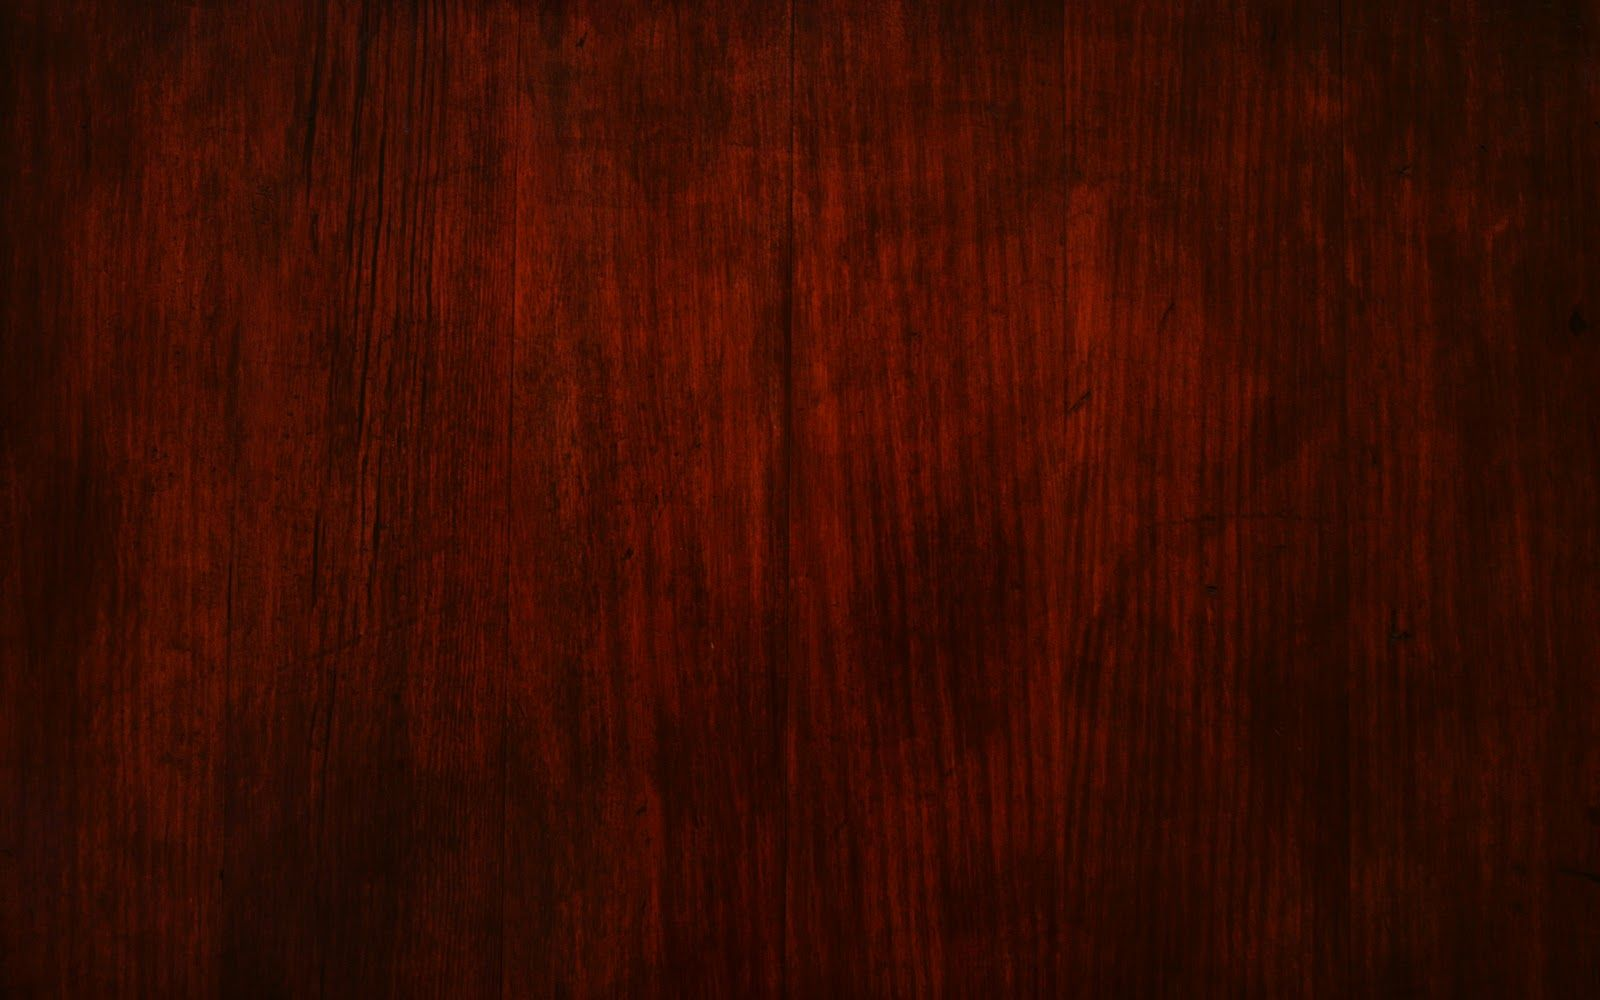 Wood Background Free Textured Wallpaper Pattern Dark Red